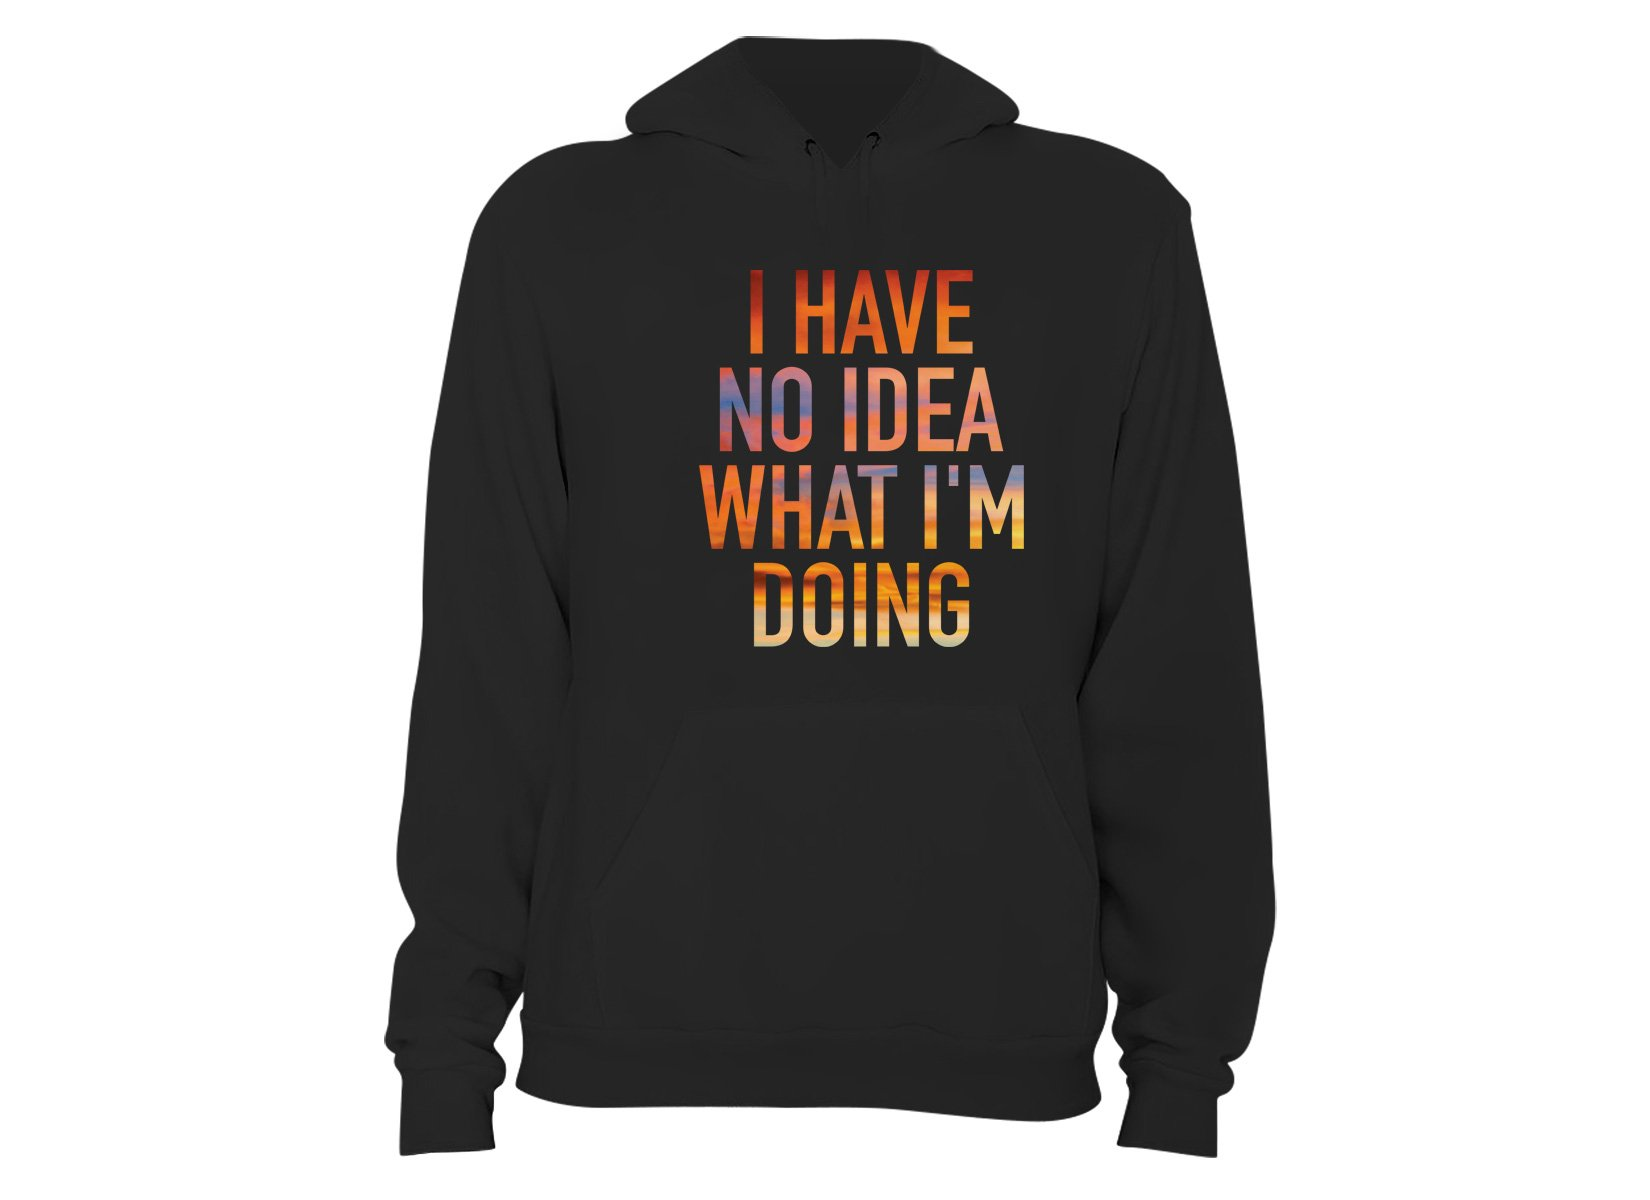 I Have No Idea What I'm Doing on Hoodie